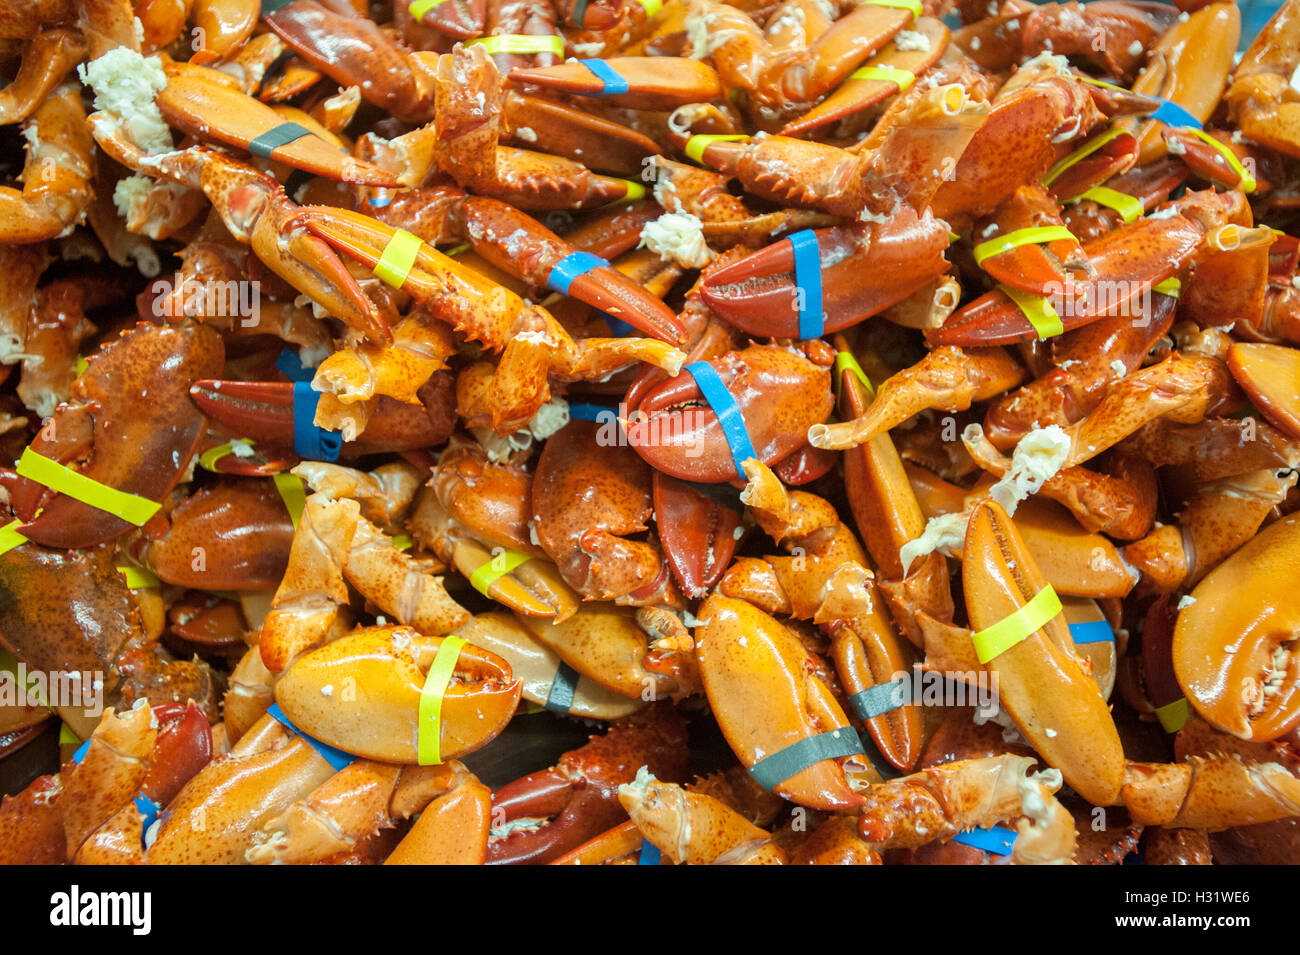 Pile of lobster claws in Saco, Maine. - Stock Image